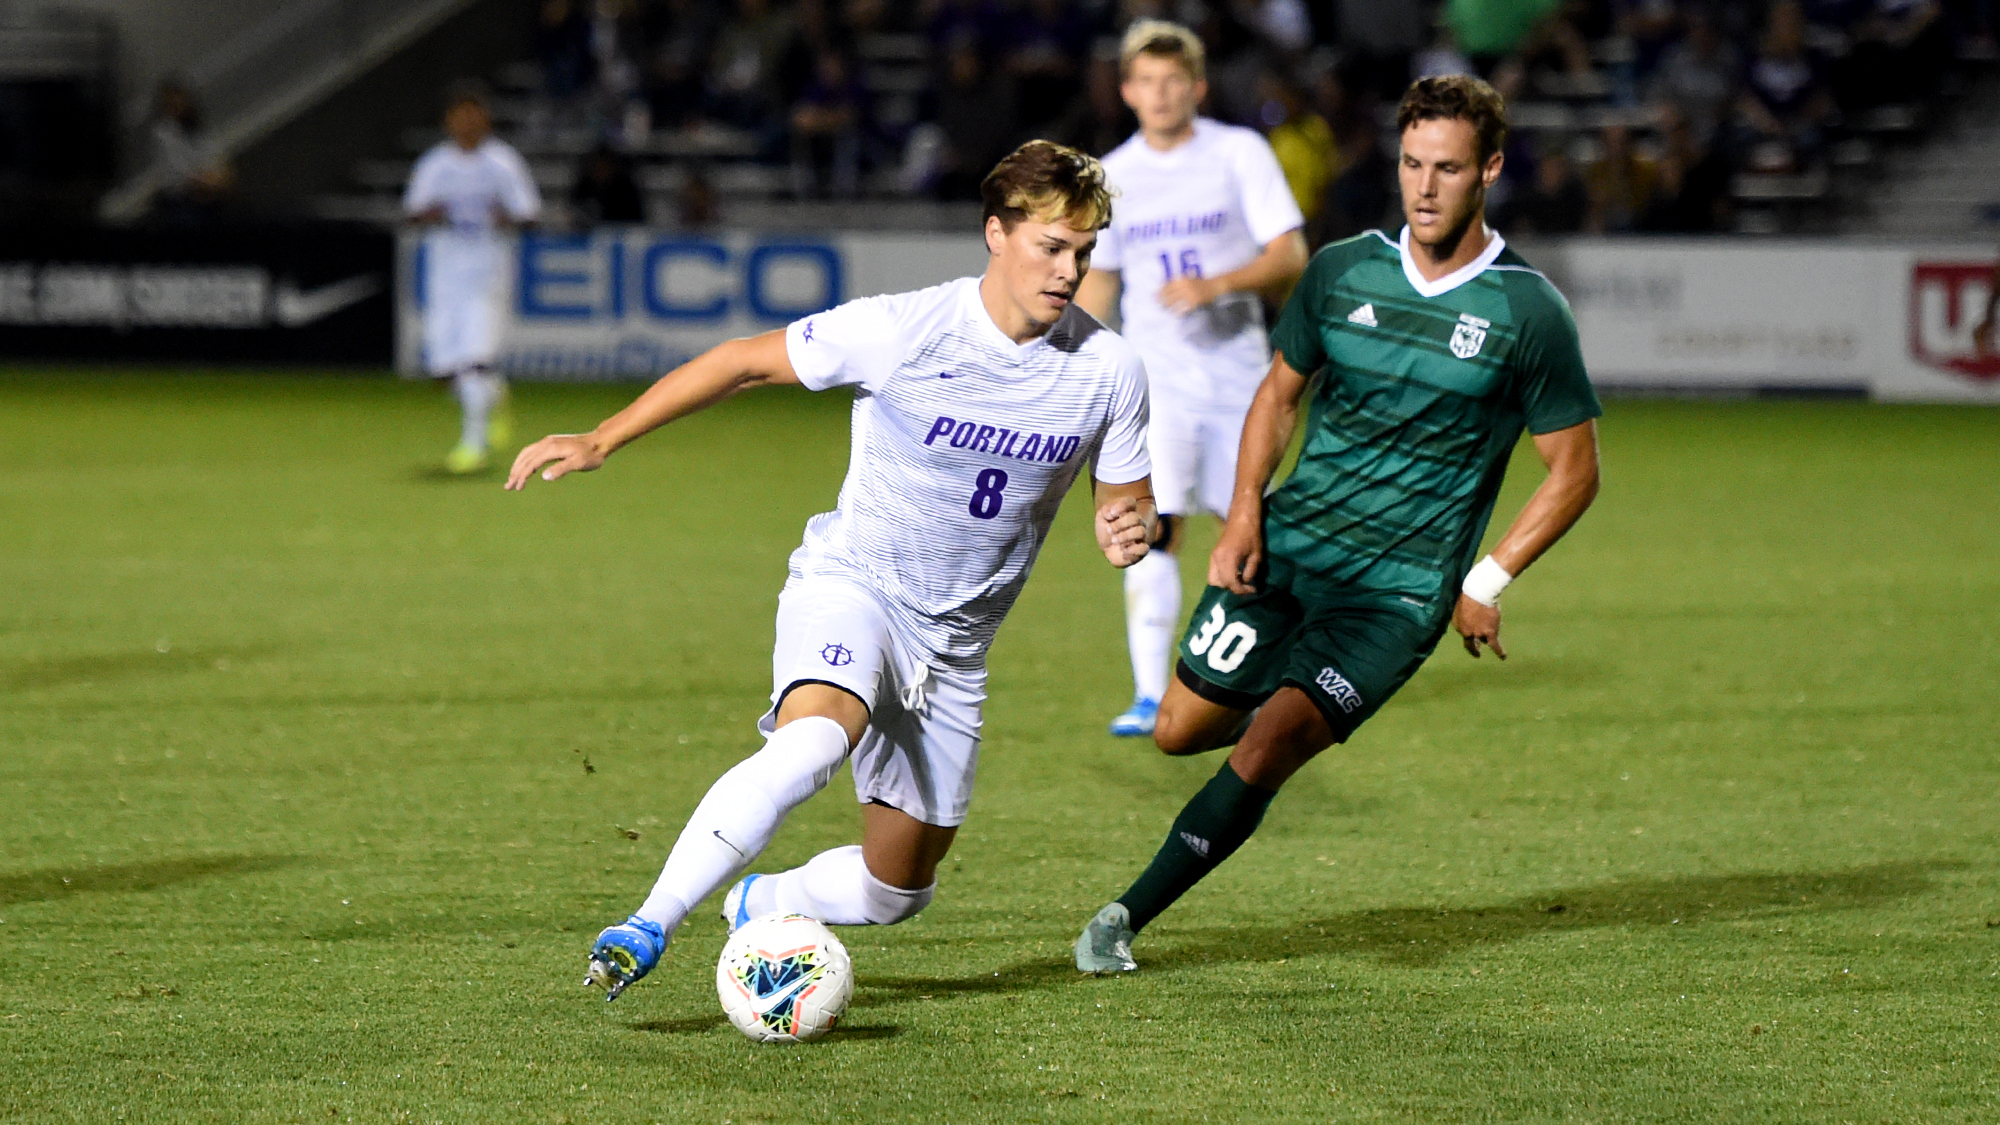 Noah Beck Men S Soccer University Of Portland Athletics